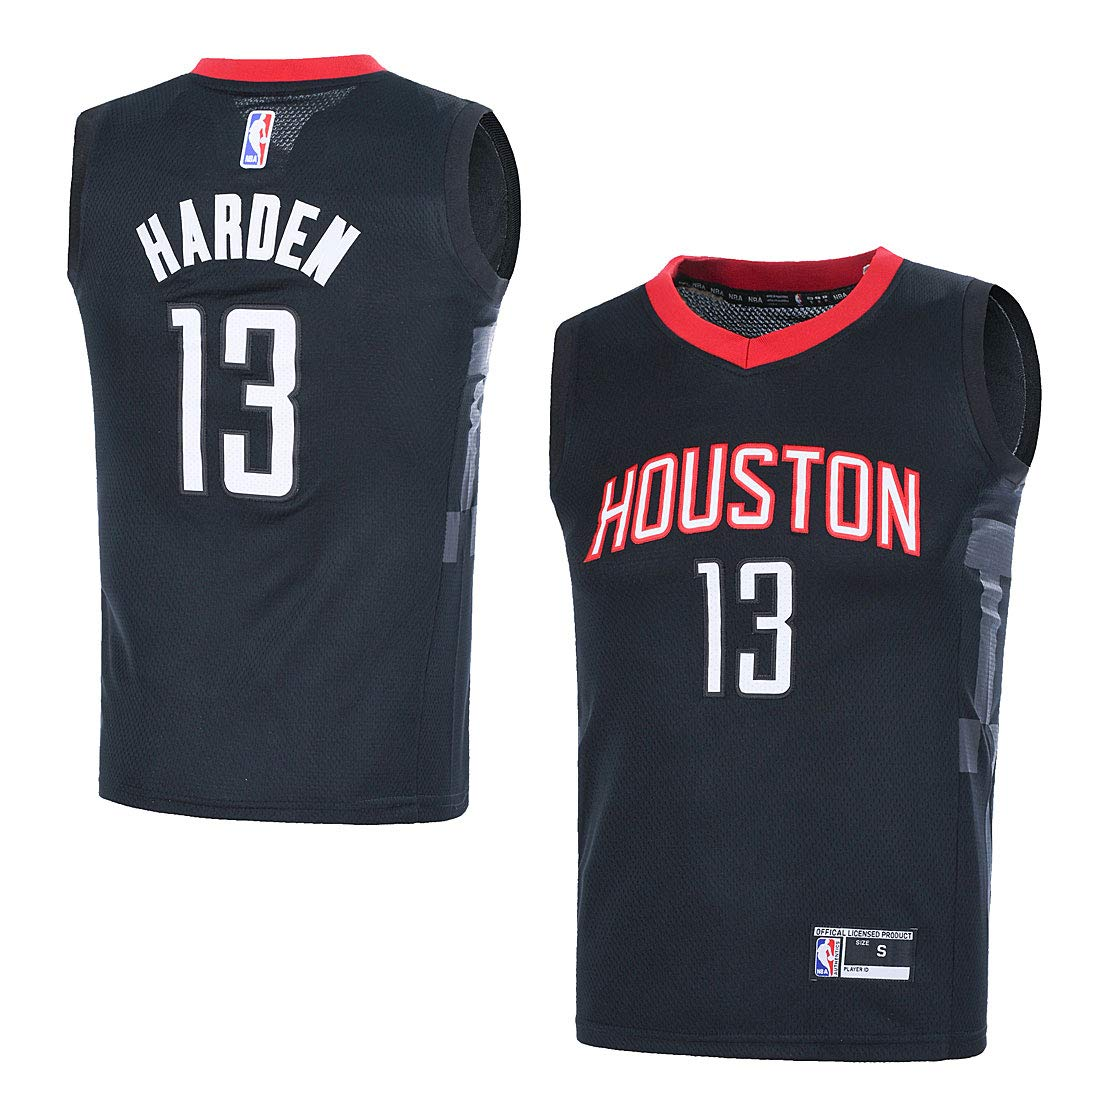 huge selection of 662fd 0dc42 Outerstuff Youth NBA 8-20 Houston Rockets #13 James Harden Swingman Jersey  Black